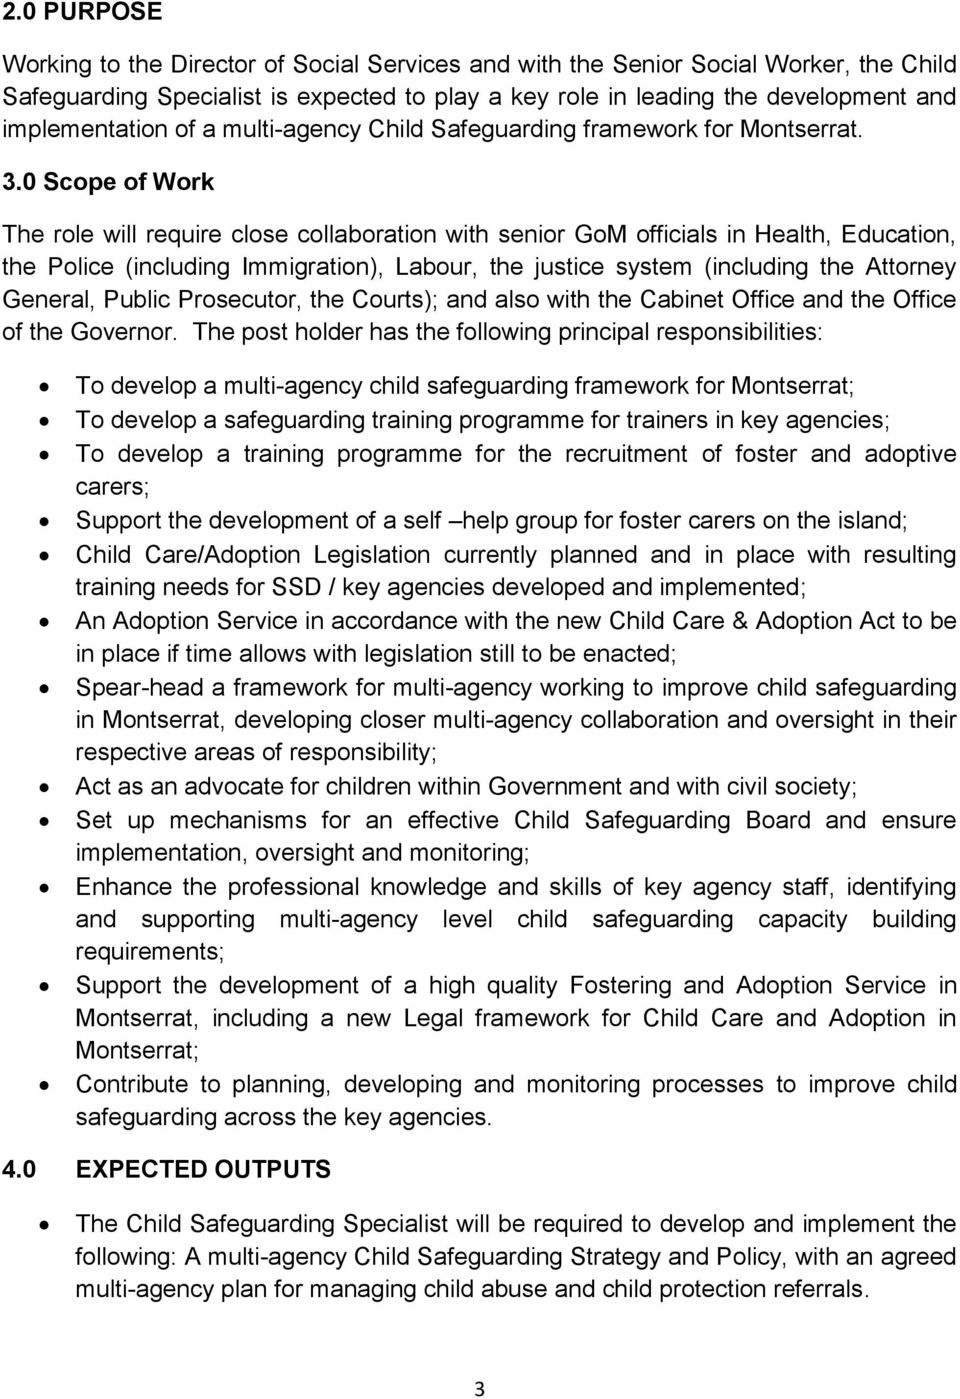 0 Scope of Work The role will require close collaboration with senior GoM officials in Health, Education, the Police (including Immigration), Labour, the justice system (including the Attorney